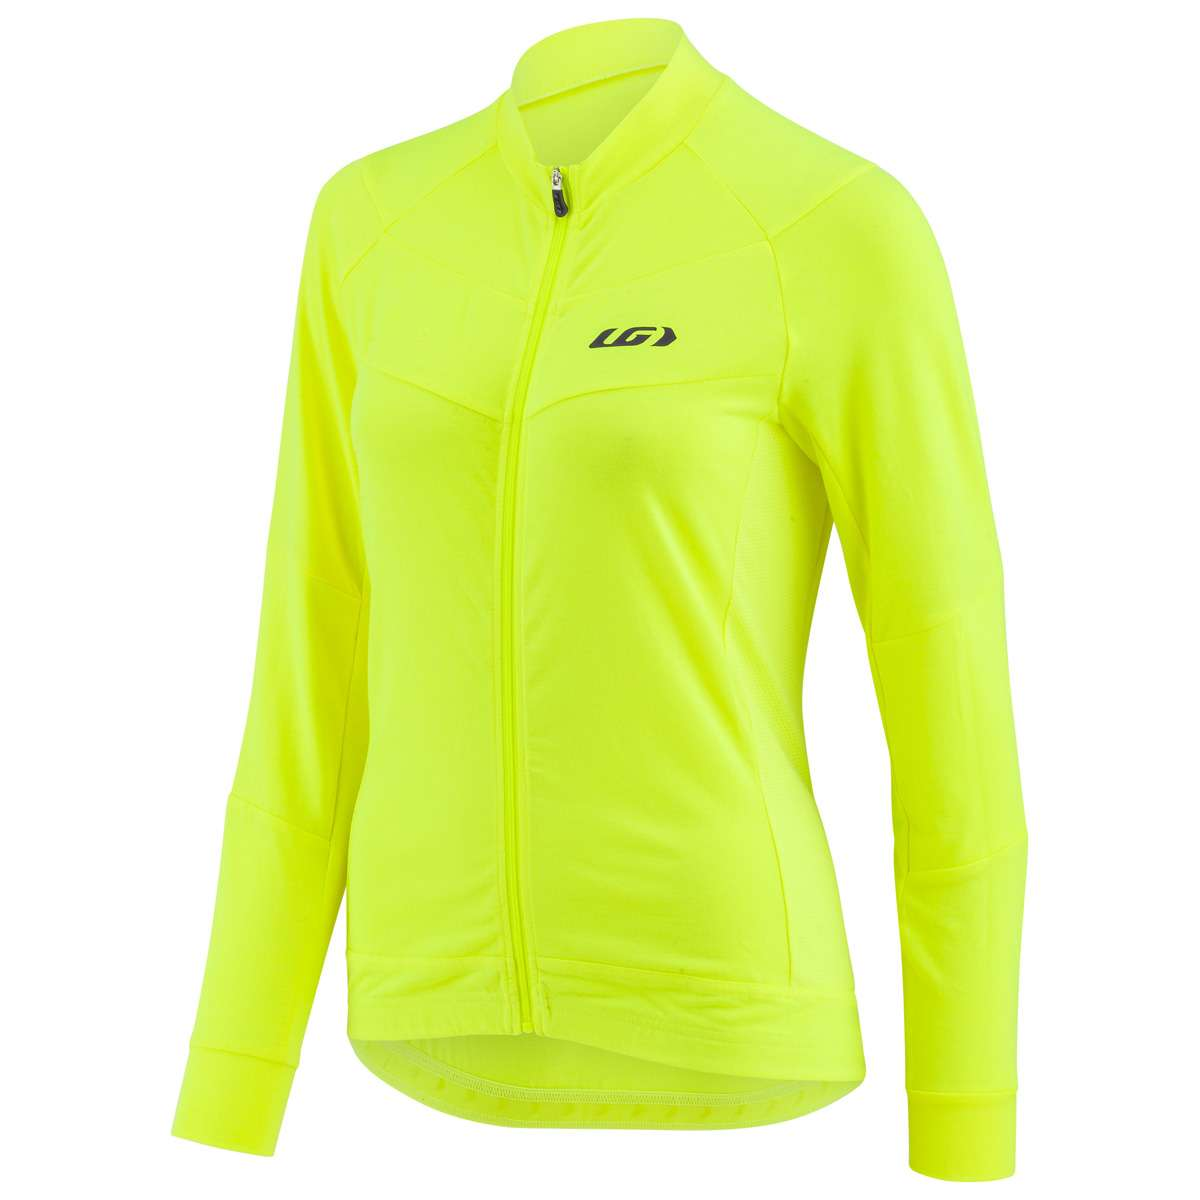 Louis Garneau 2019 Women s Beeze 2 Long Sleeve Cycling Jersey ... c6325c4c0